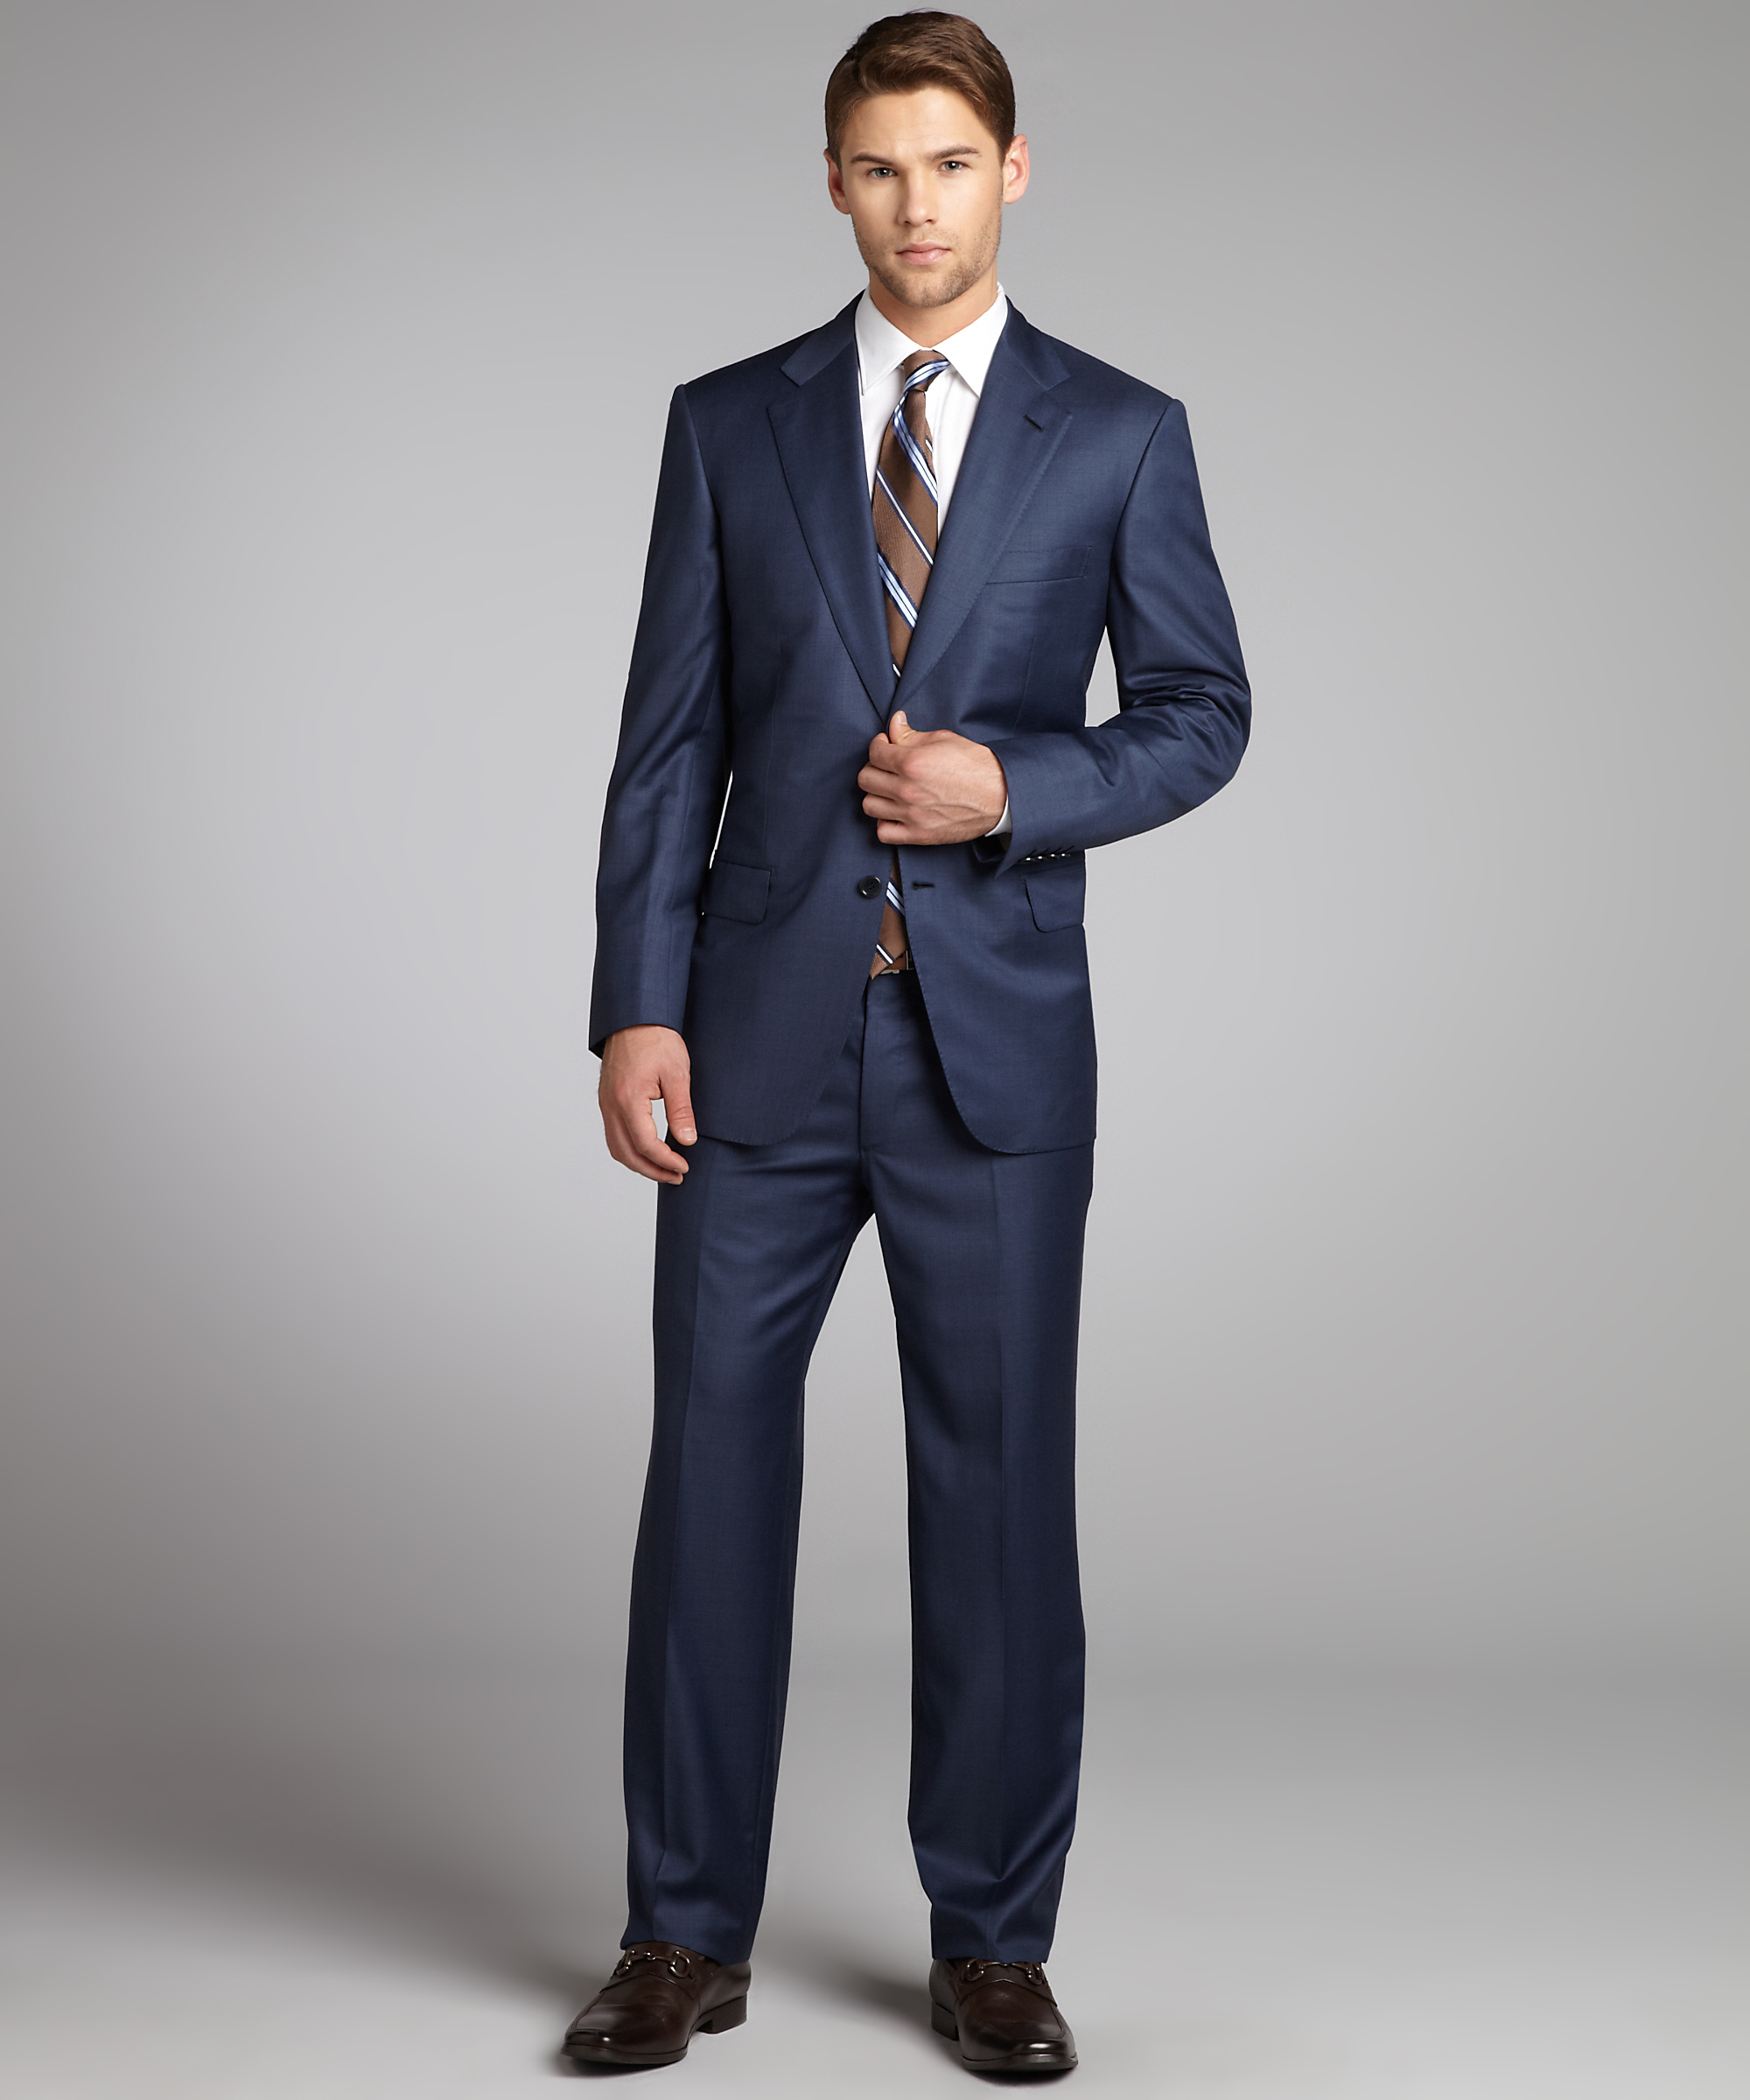 brioni suits brioni deep blue super 180s wool u0027parlamentou0027 2-button suit with flat front TCZZBTU